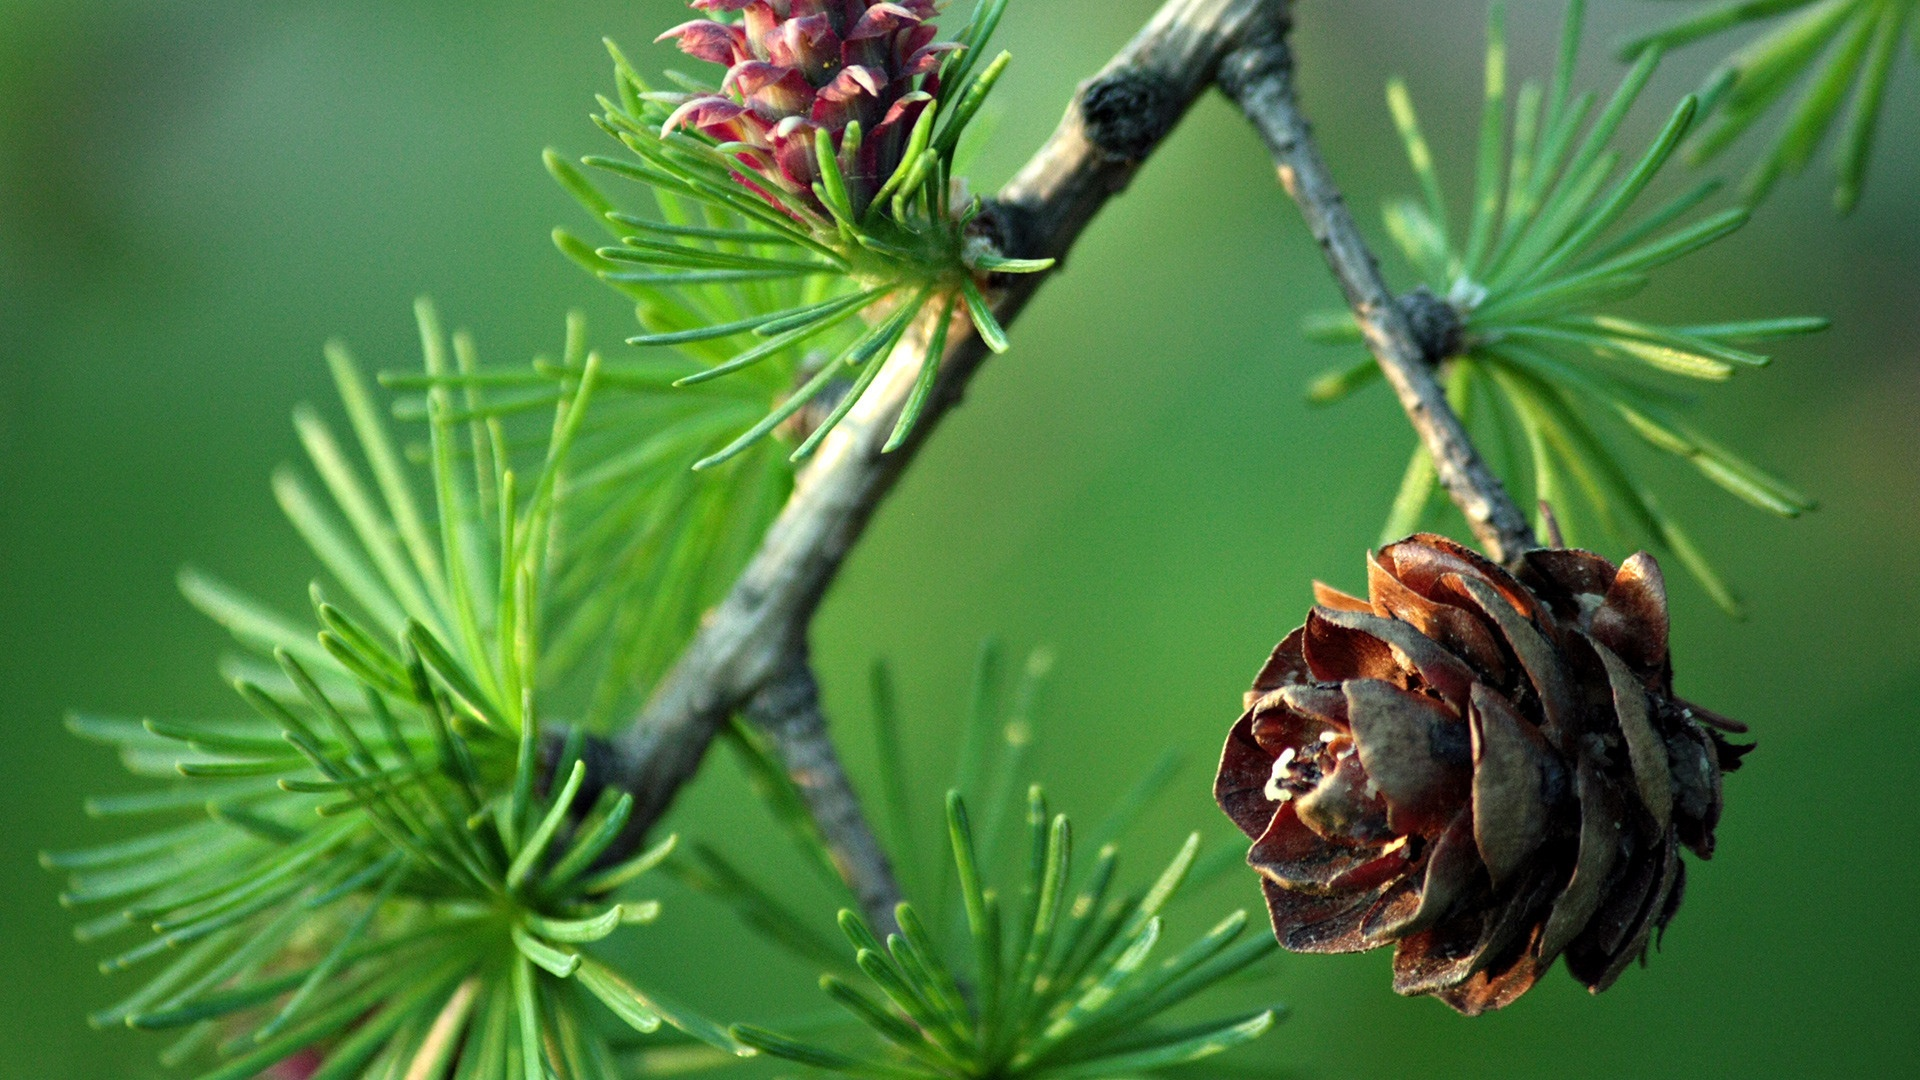 Pretty Pinecone Wallpaper